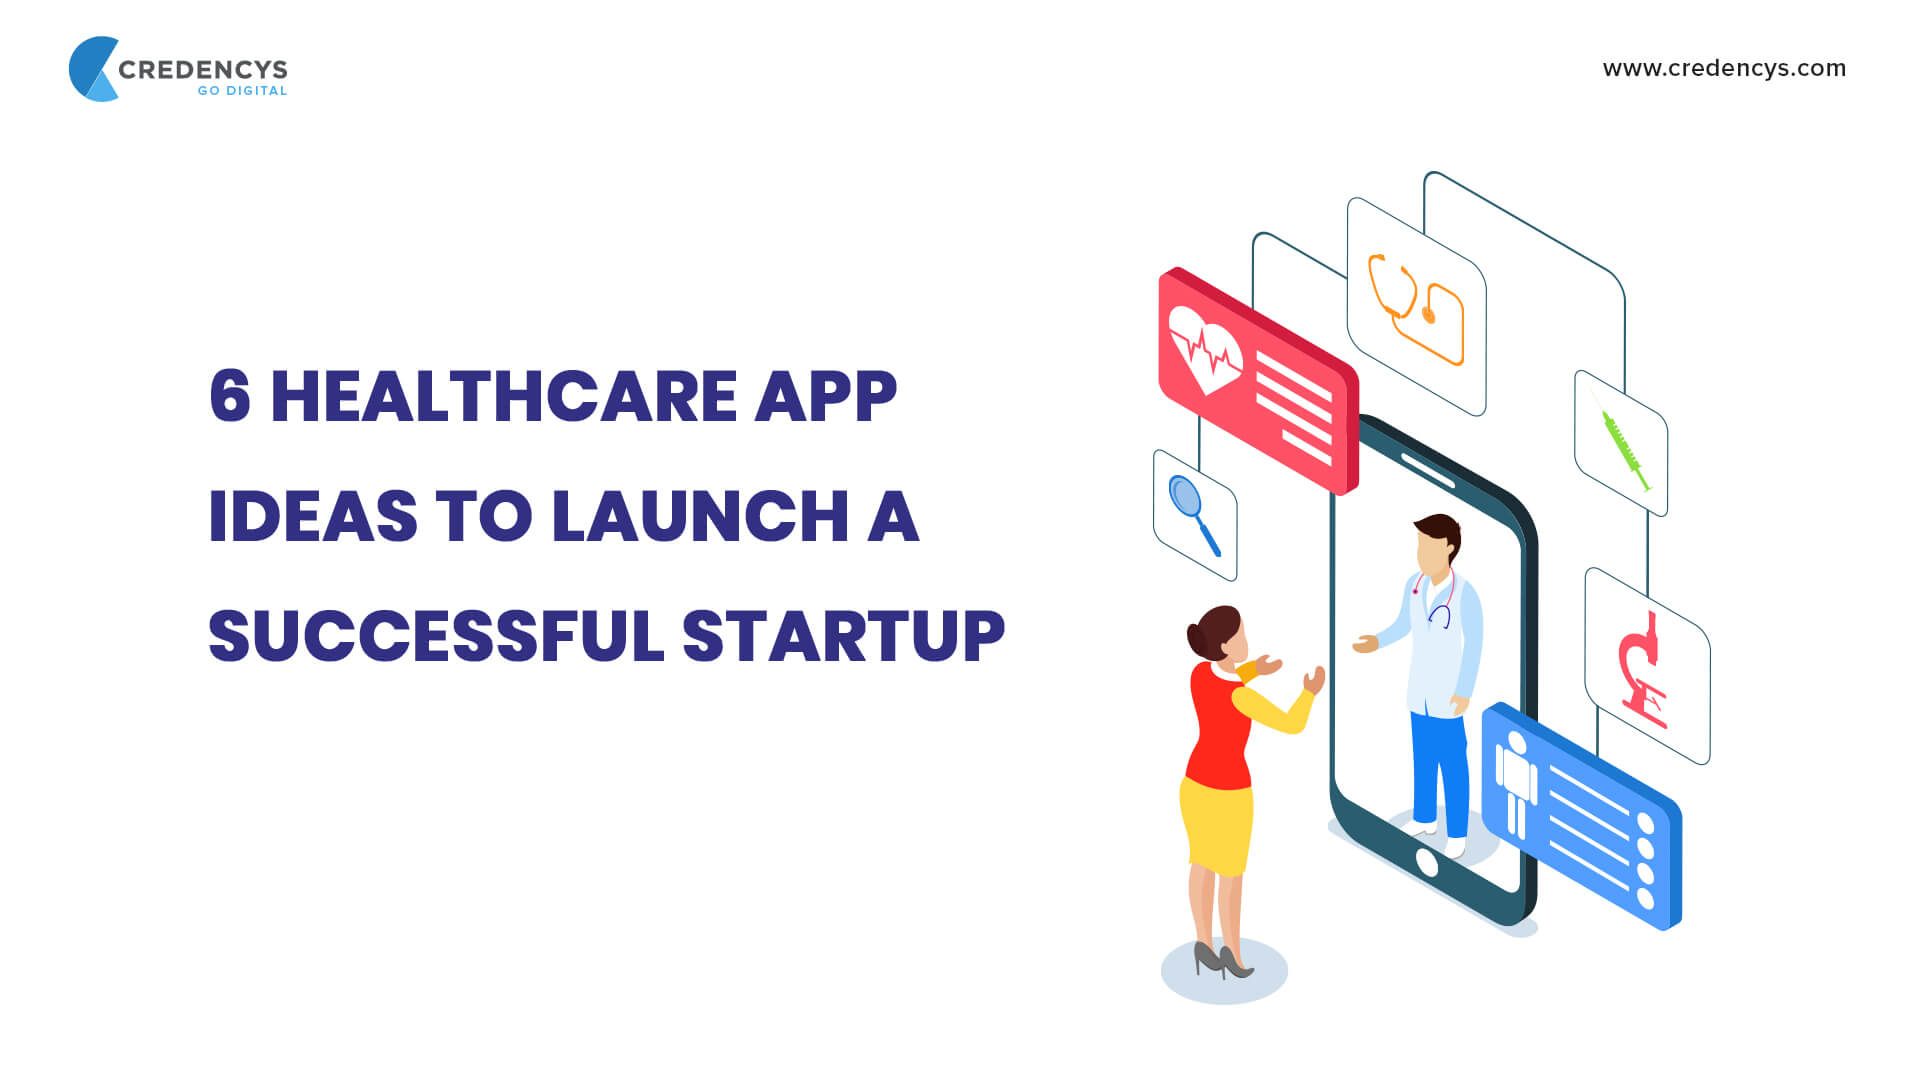 6 Healthcare App Ideas to Launch a Successful Startup (2019)